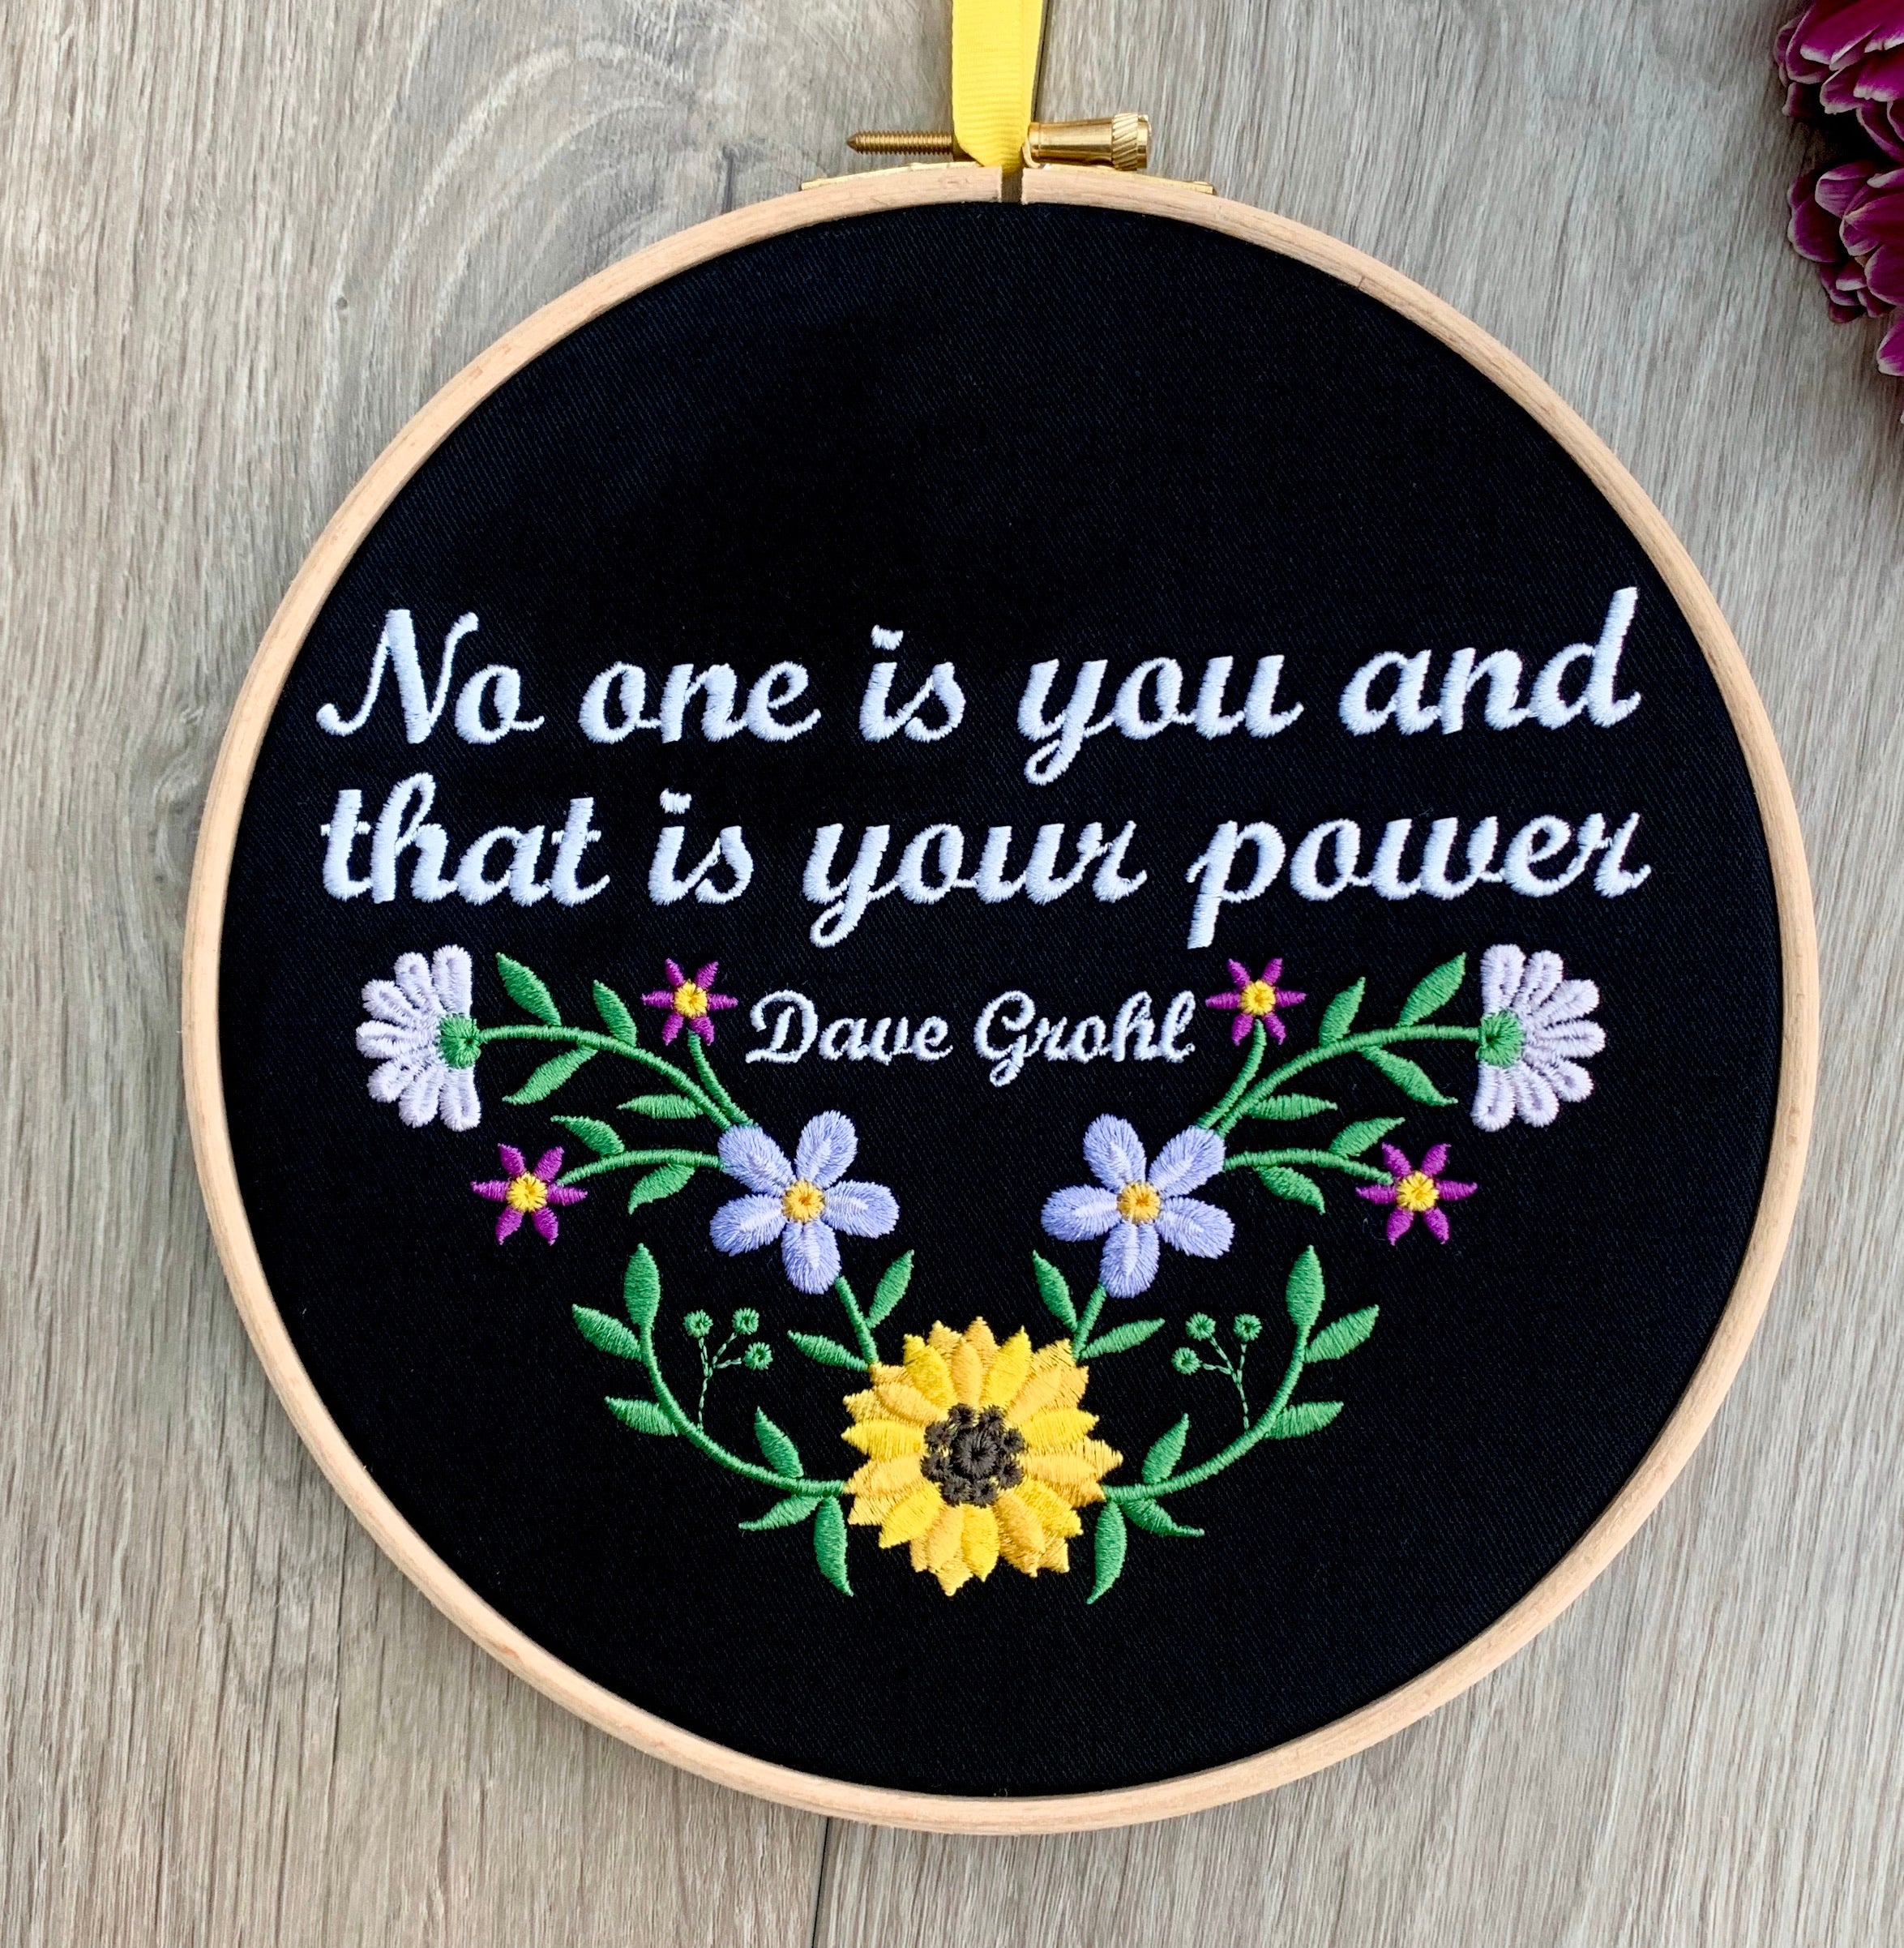 No one is you and that is your power, Dave Grohl Foo Fighters, Embroidery hoop art